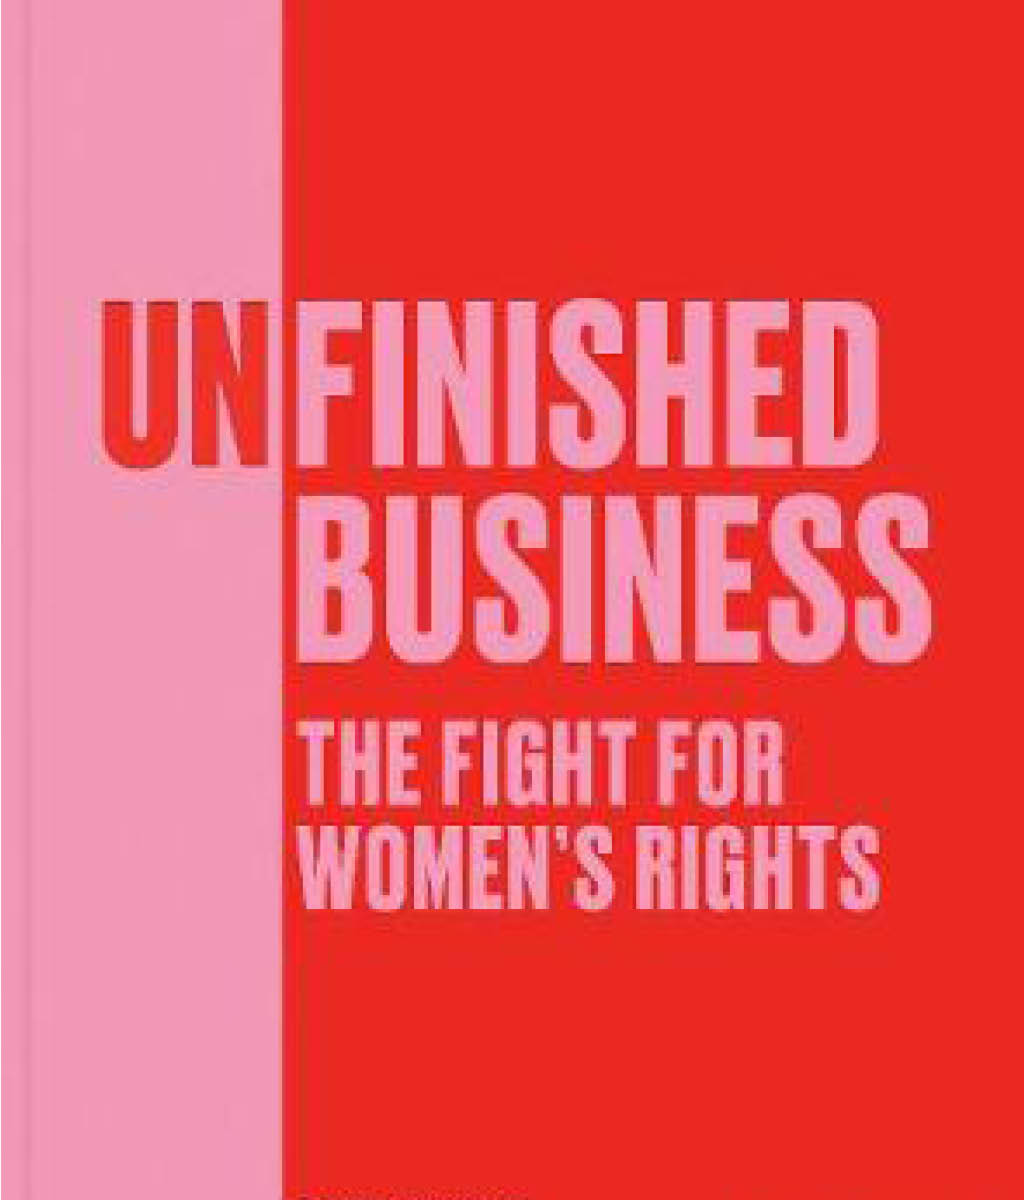 Unfinished Business by Polly Russell and Margaretta Jolly